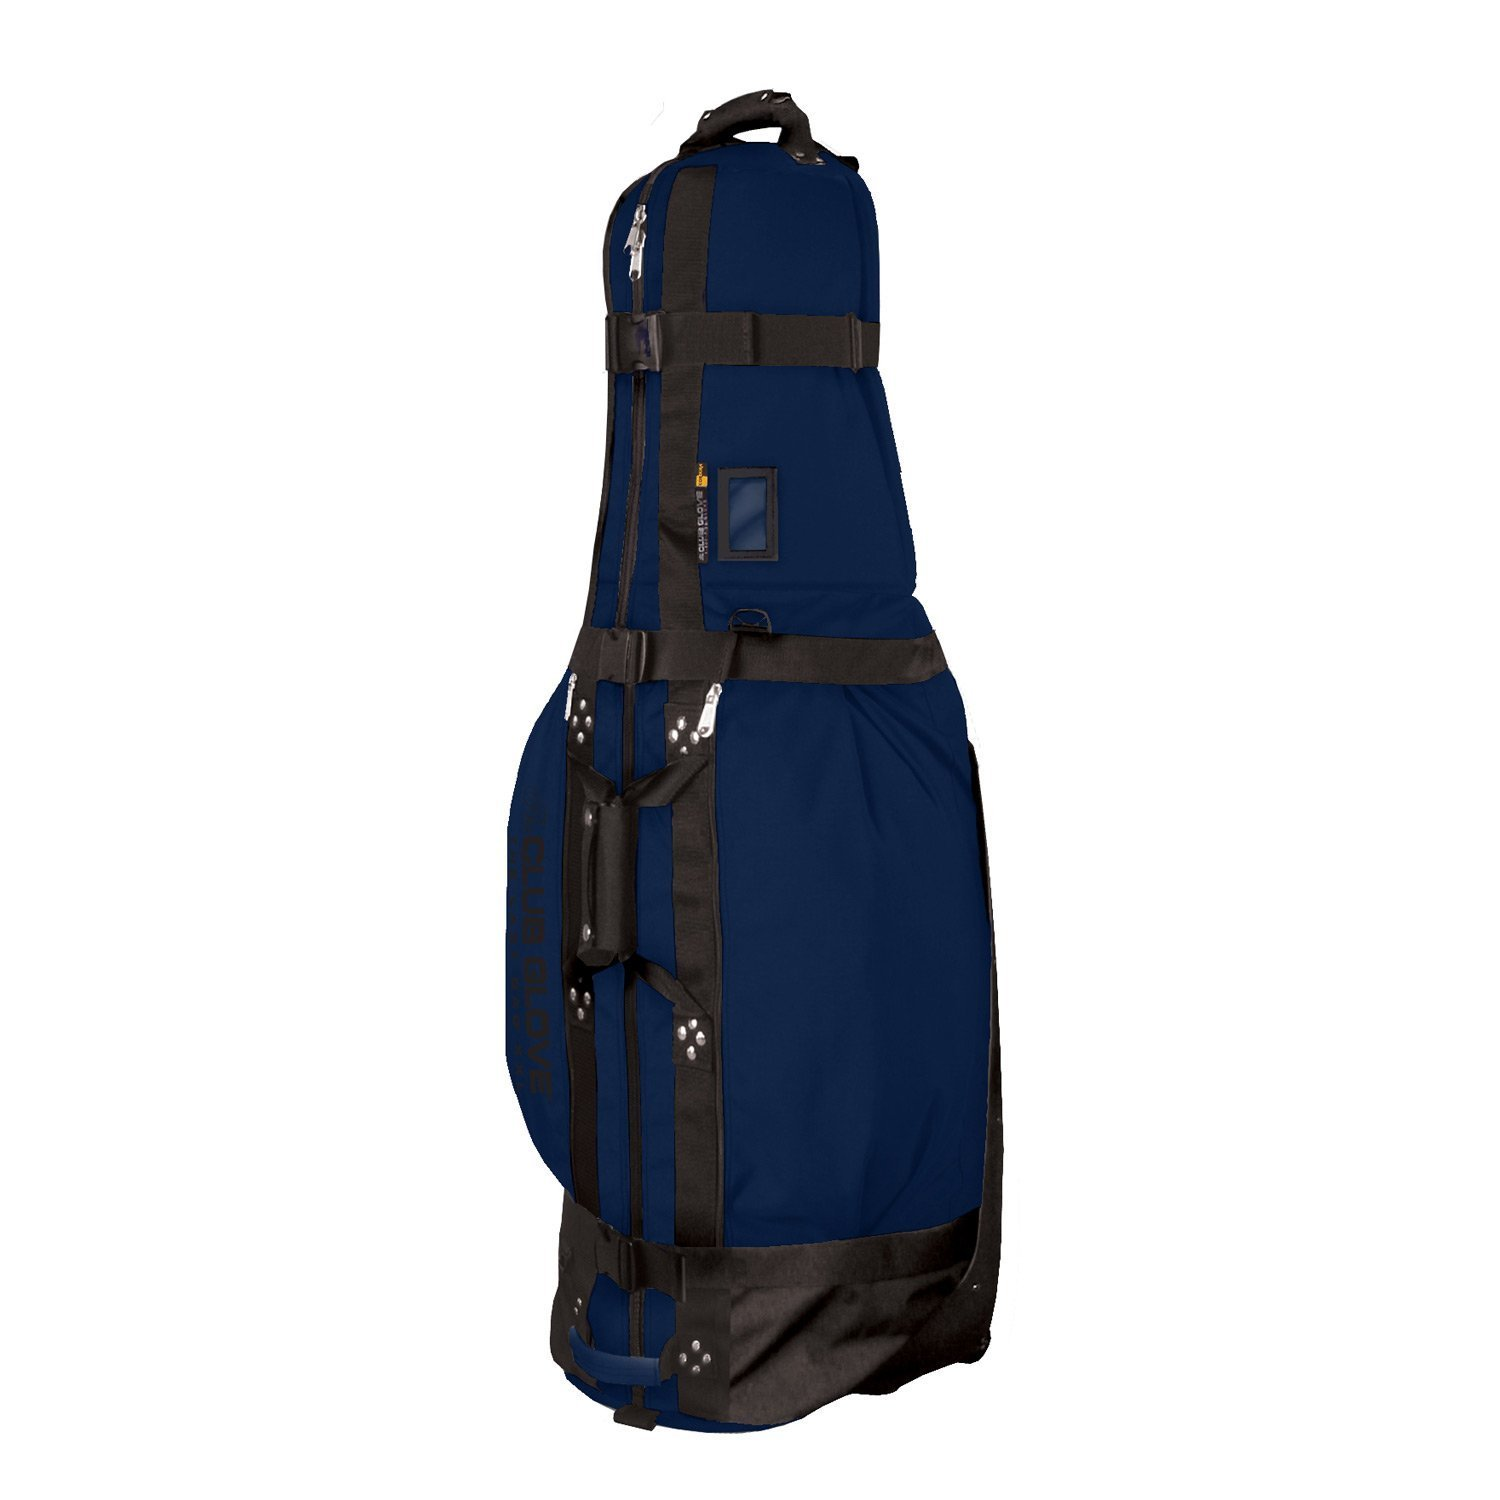 Club Glove Last Bag XL Pro Tour Travel Cover For Staff Bag Navy Blue NEW